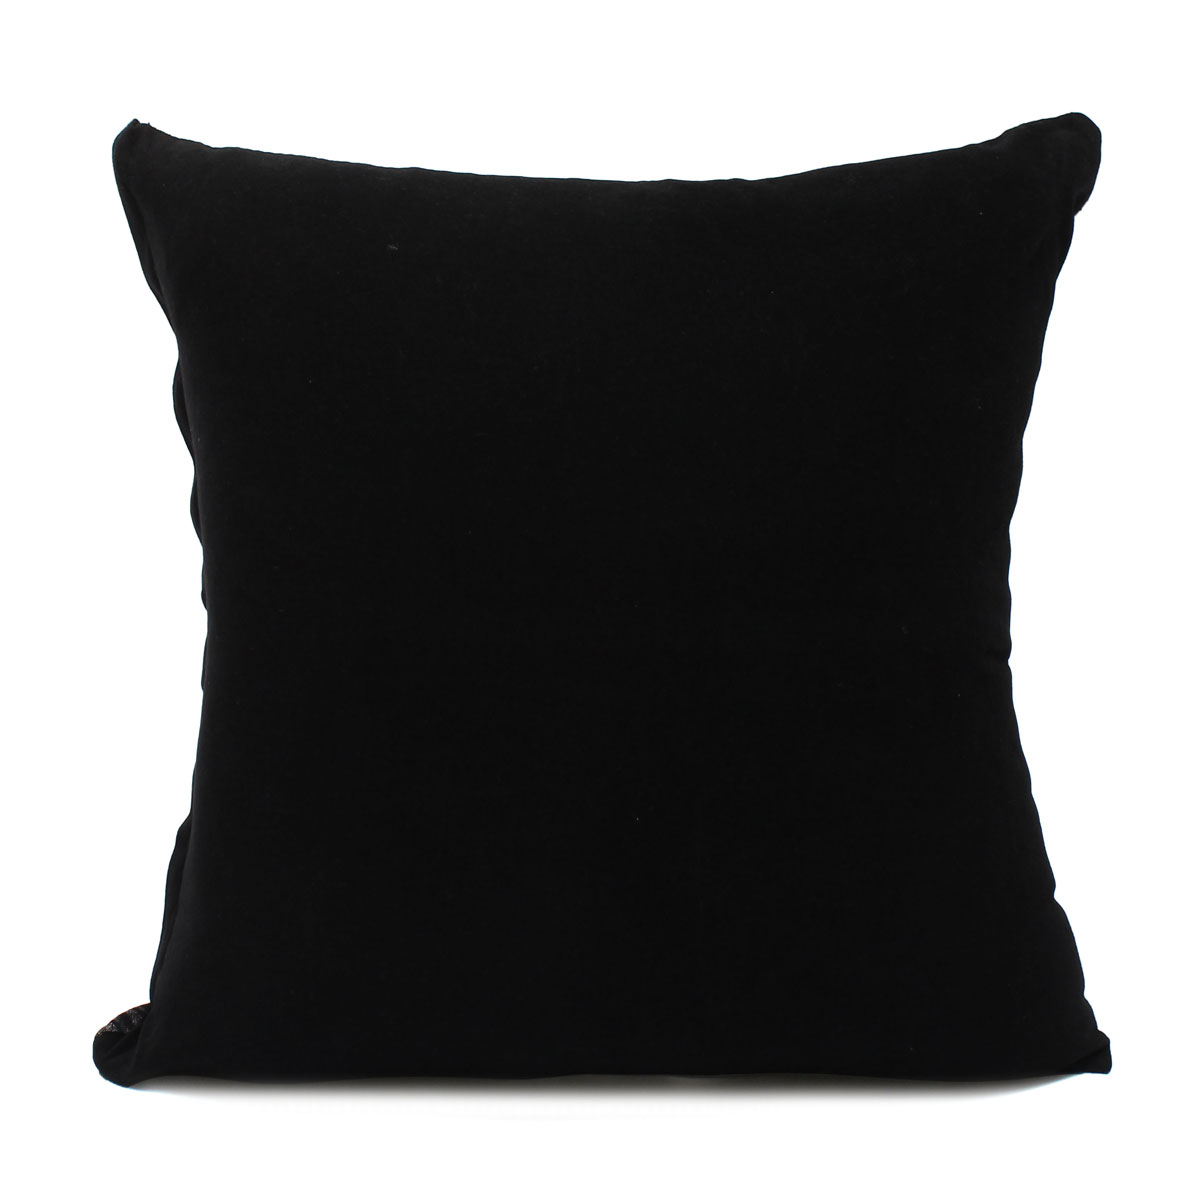 Black Microfiber Throw Pillows : black sofa pillows - 28 images - adjustable sofa with 2 pillows black microfiber sofas all ...